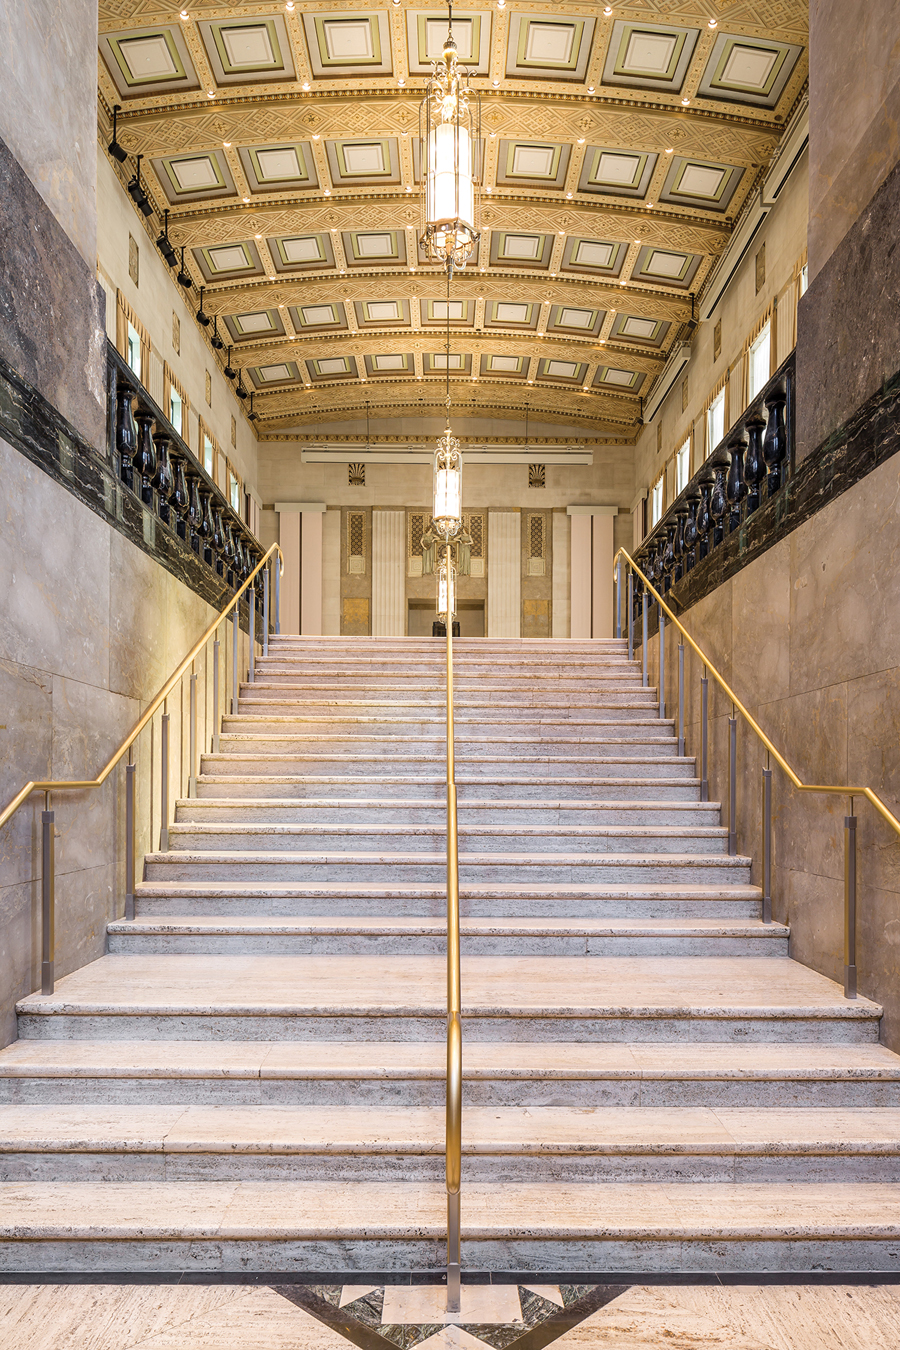 View of the grand stair leading to the banking hall. The rehabilitated coffered ceilings conceal acoustic controls, fire sprinklers, and return air vents.